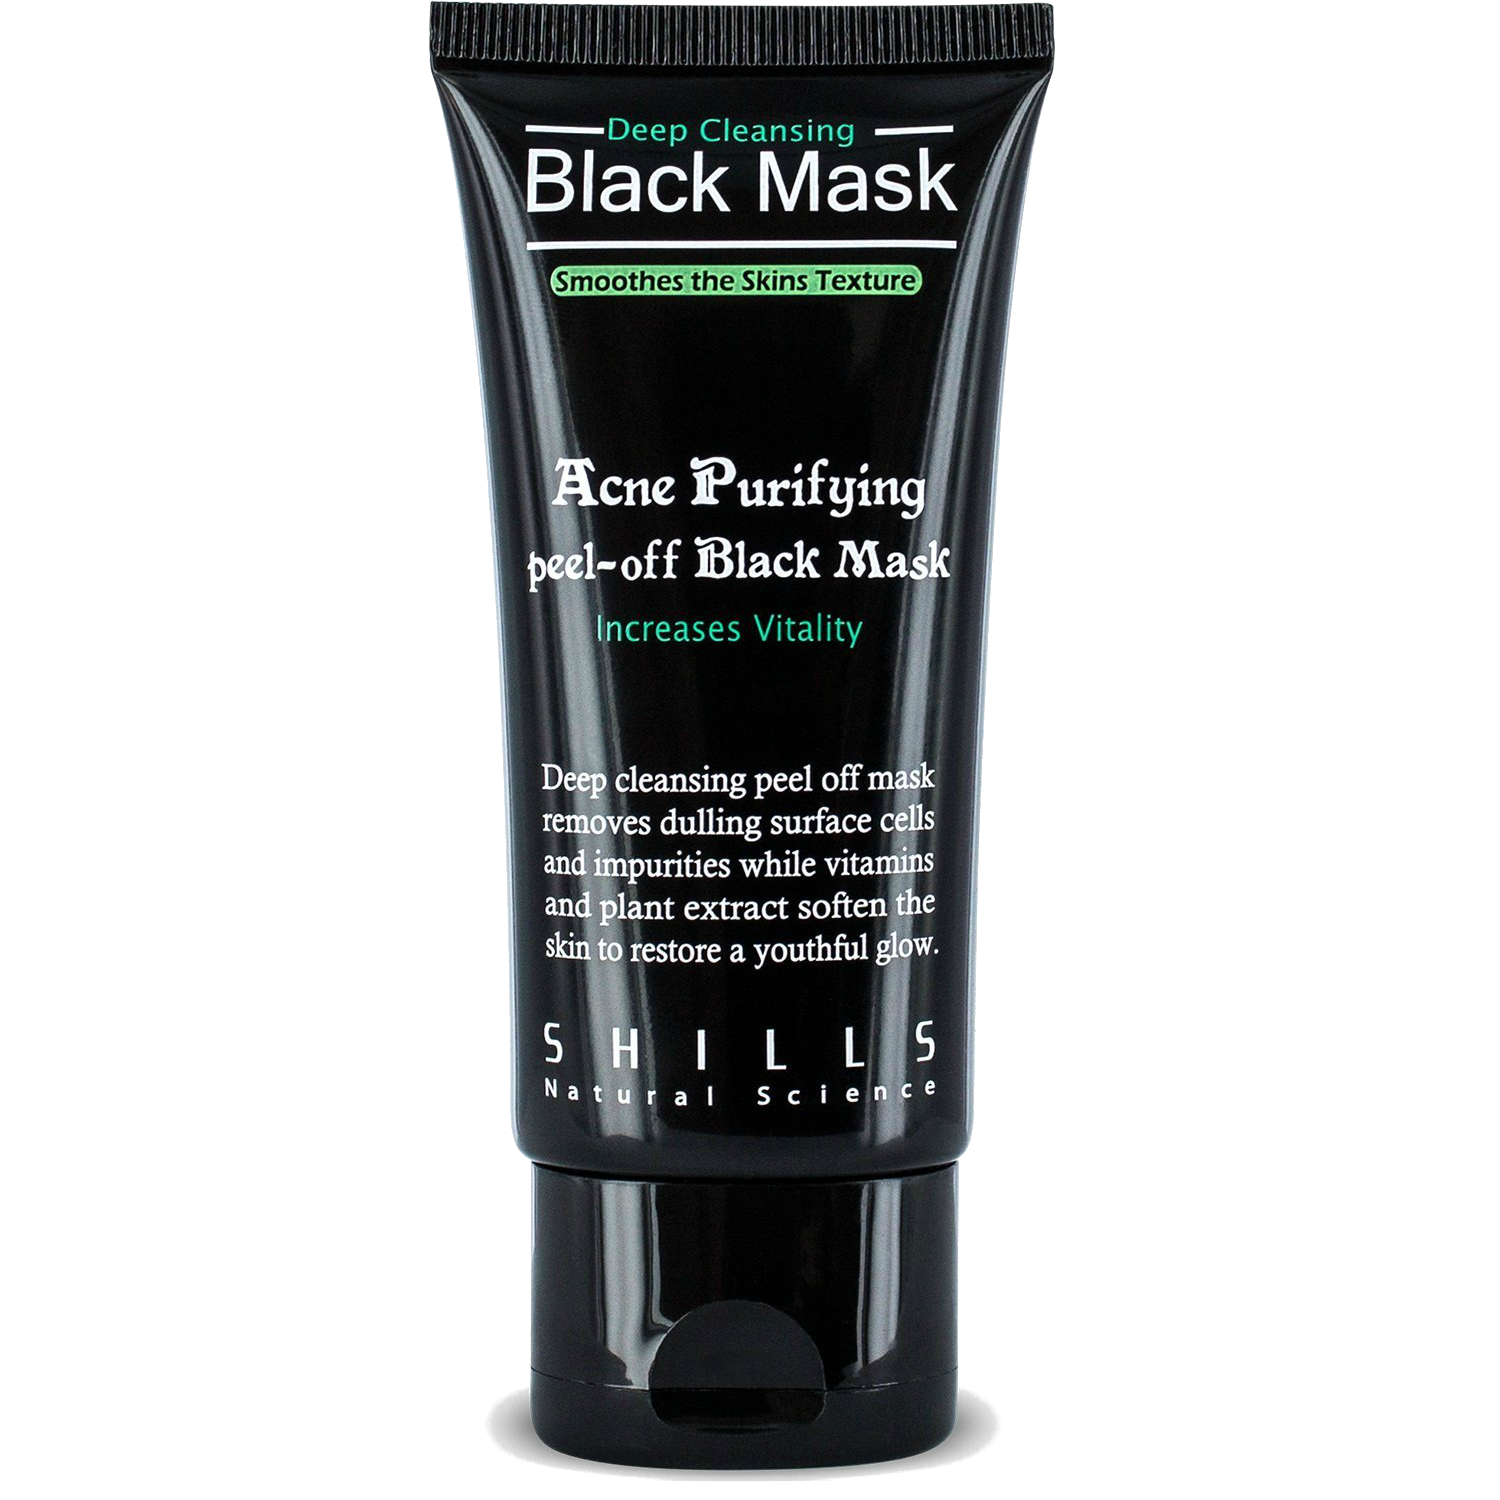 Home Deep cleansing black mask, Oil control products